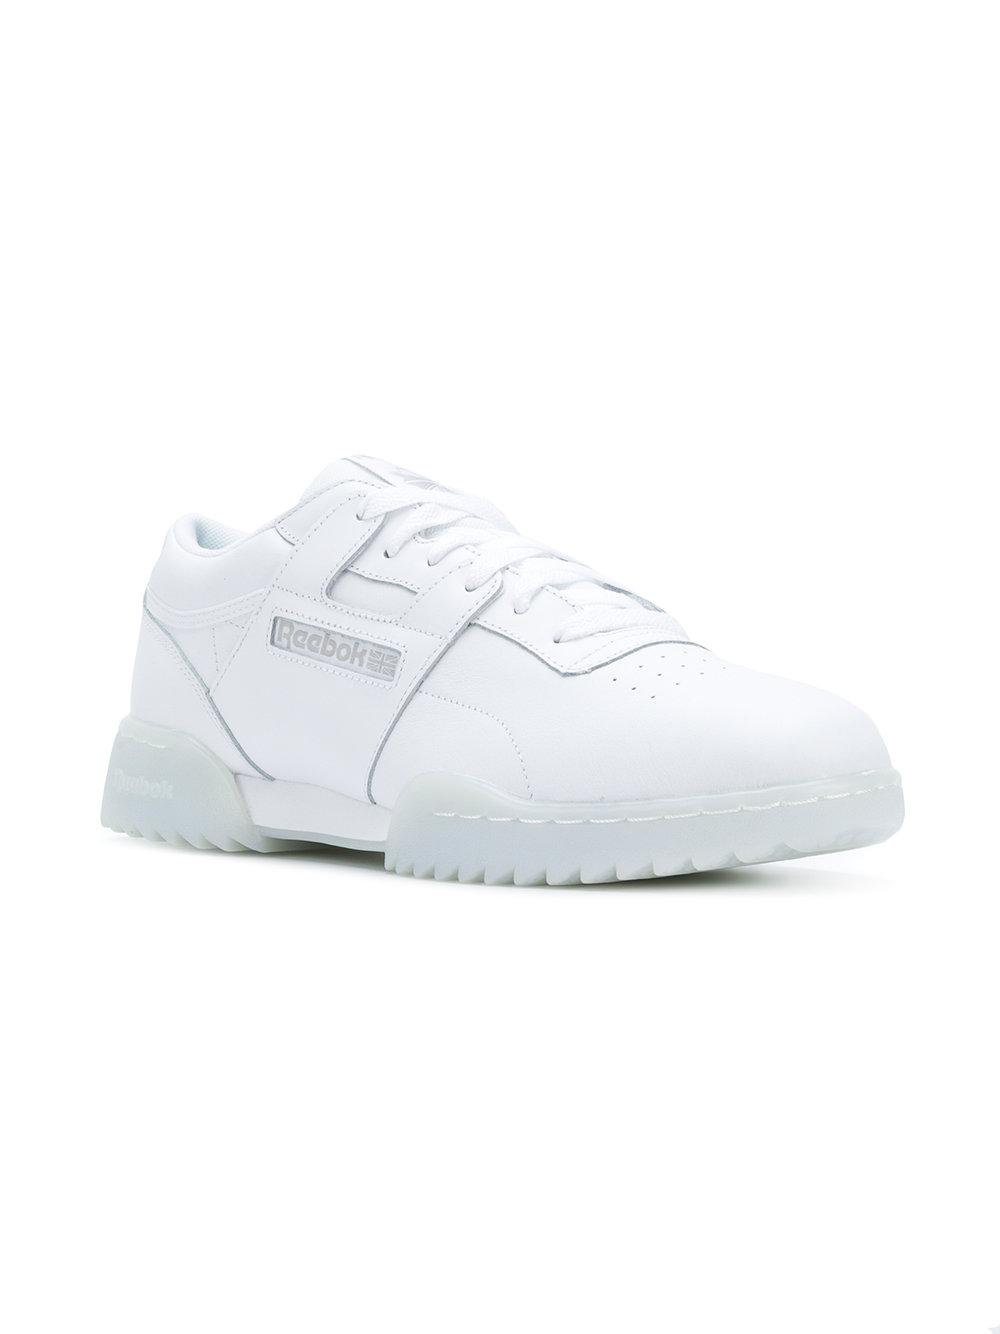 7f274a0449c36 Lyst - Reebok Workout Clean Ripple Sneakers in White for Men